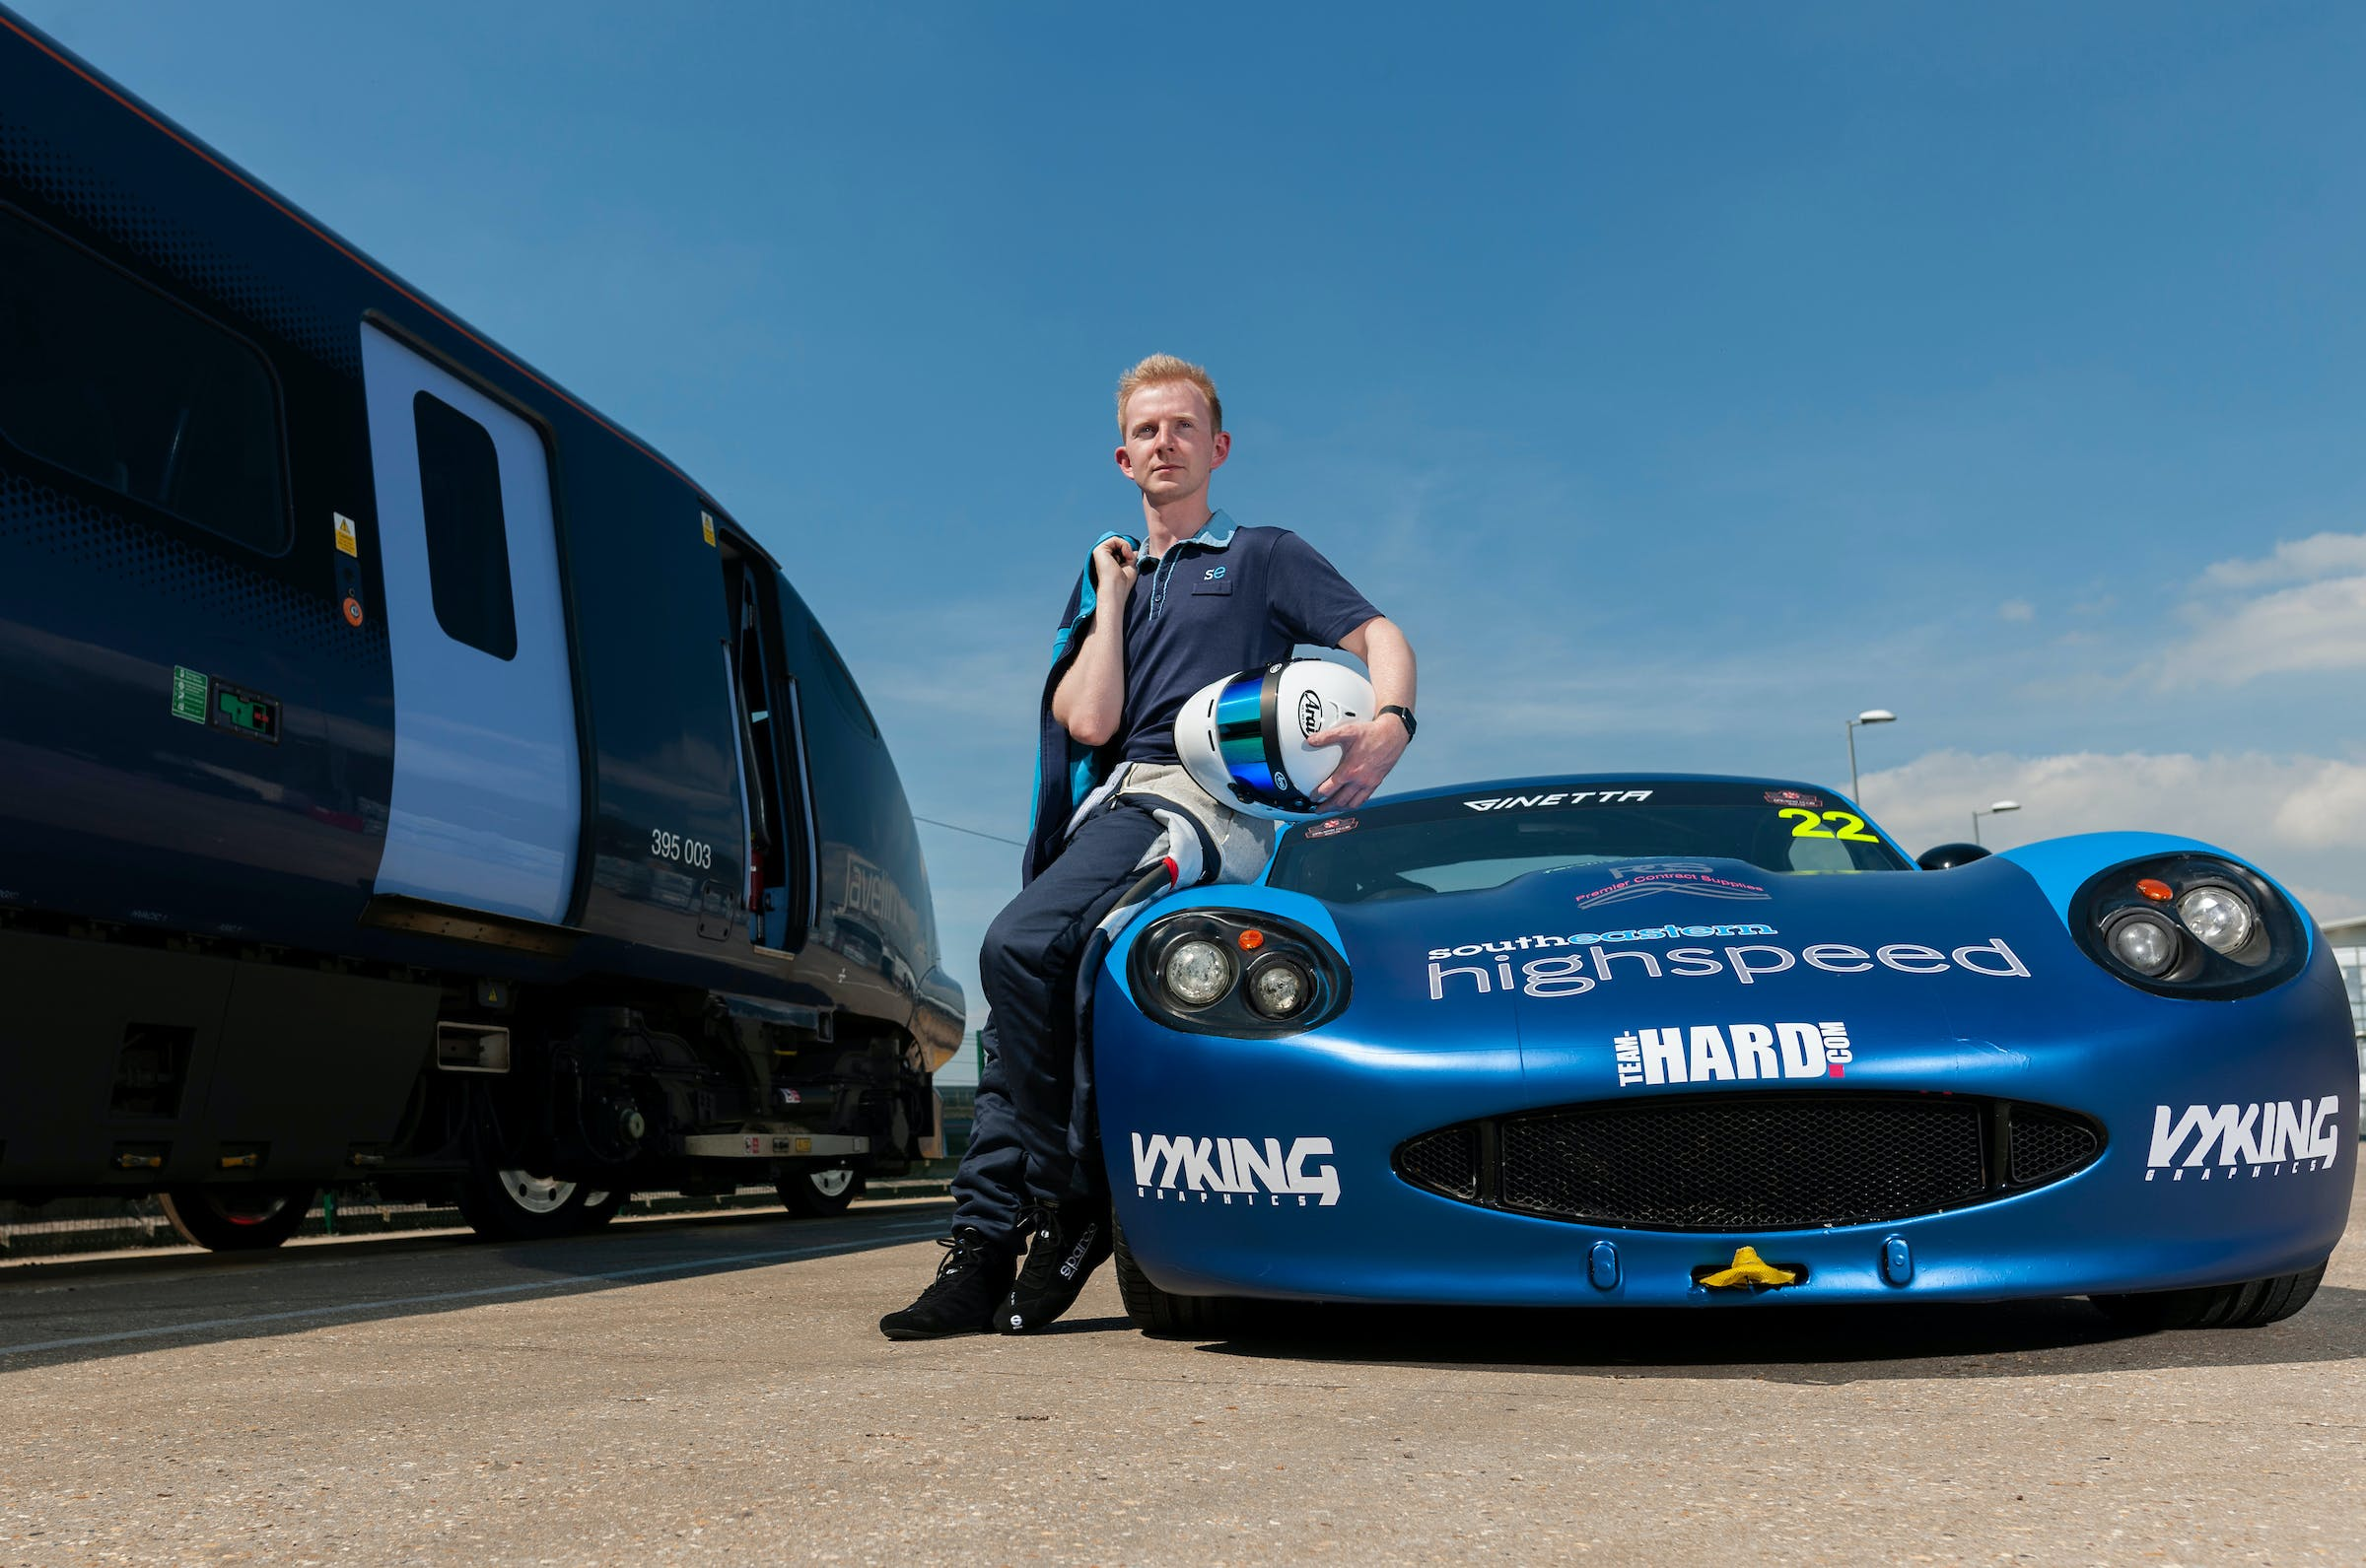 Toby Trice sitting on the hood of his racing car, parked adjacent to a train.